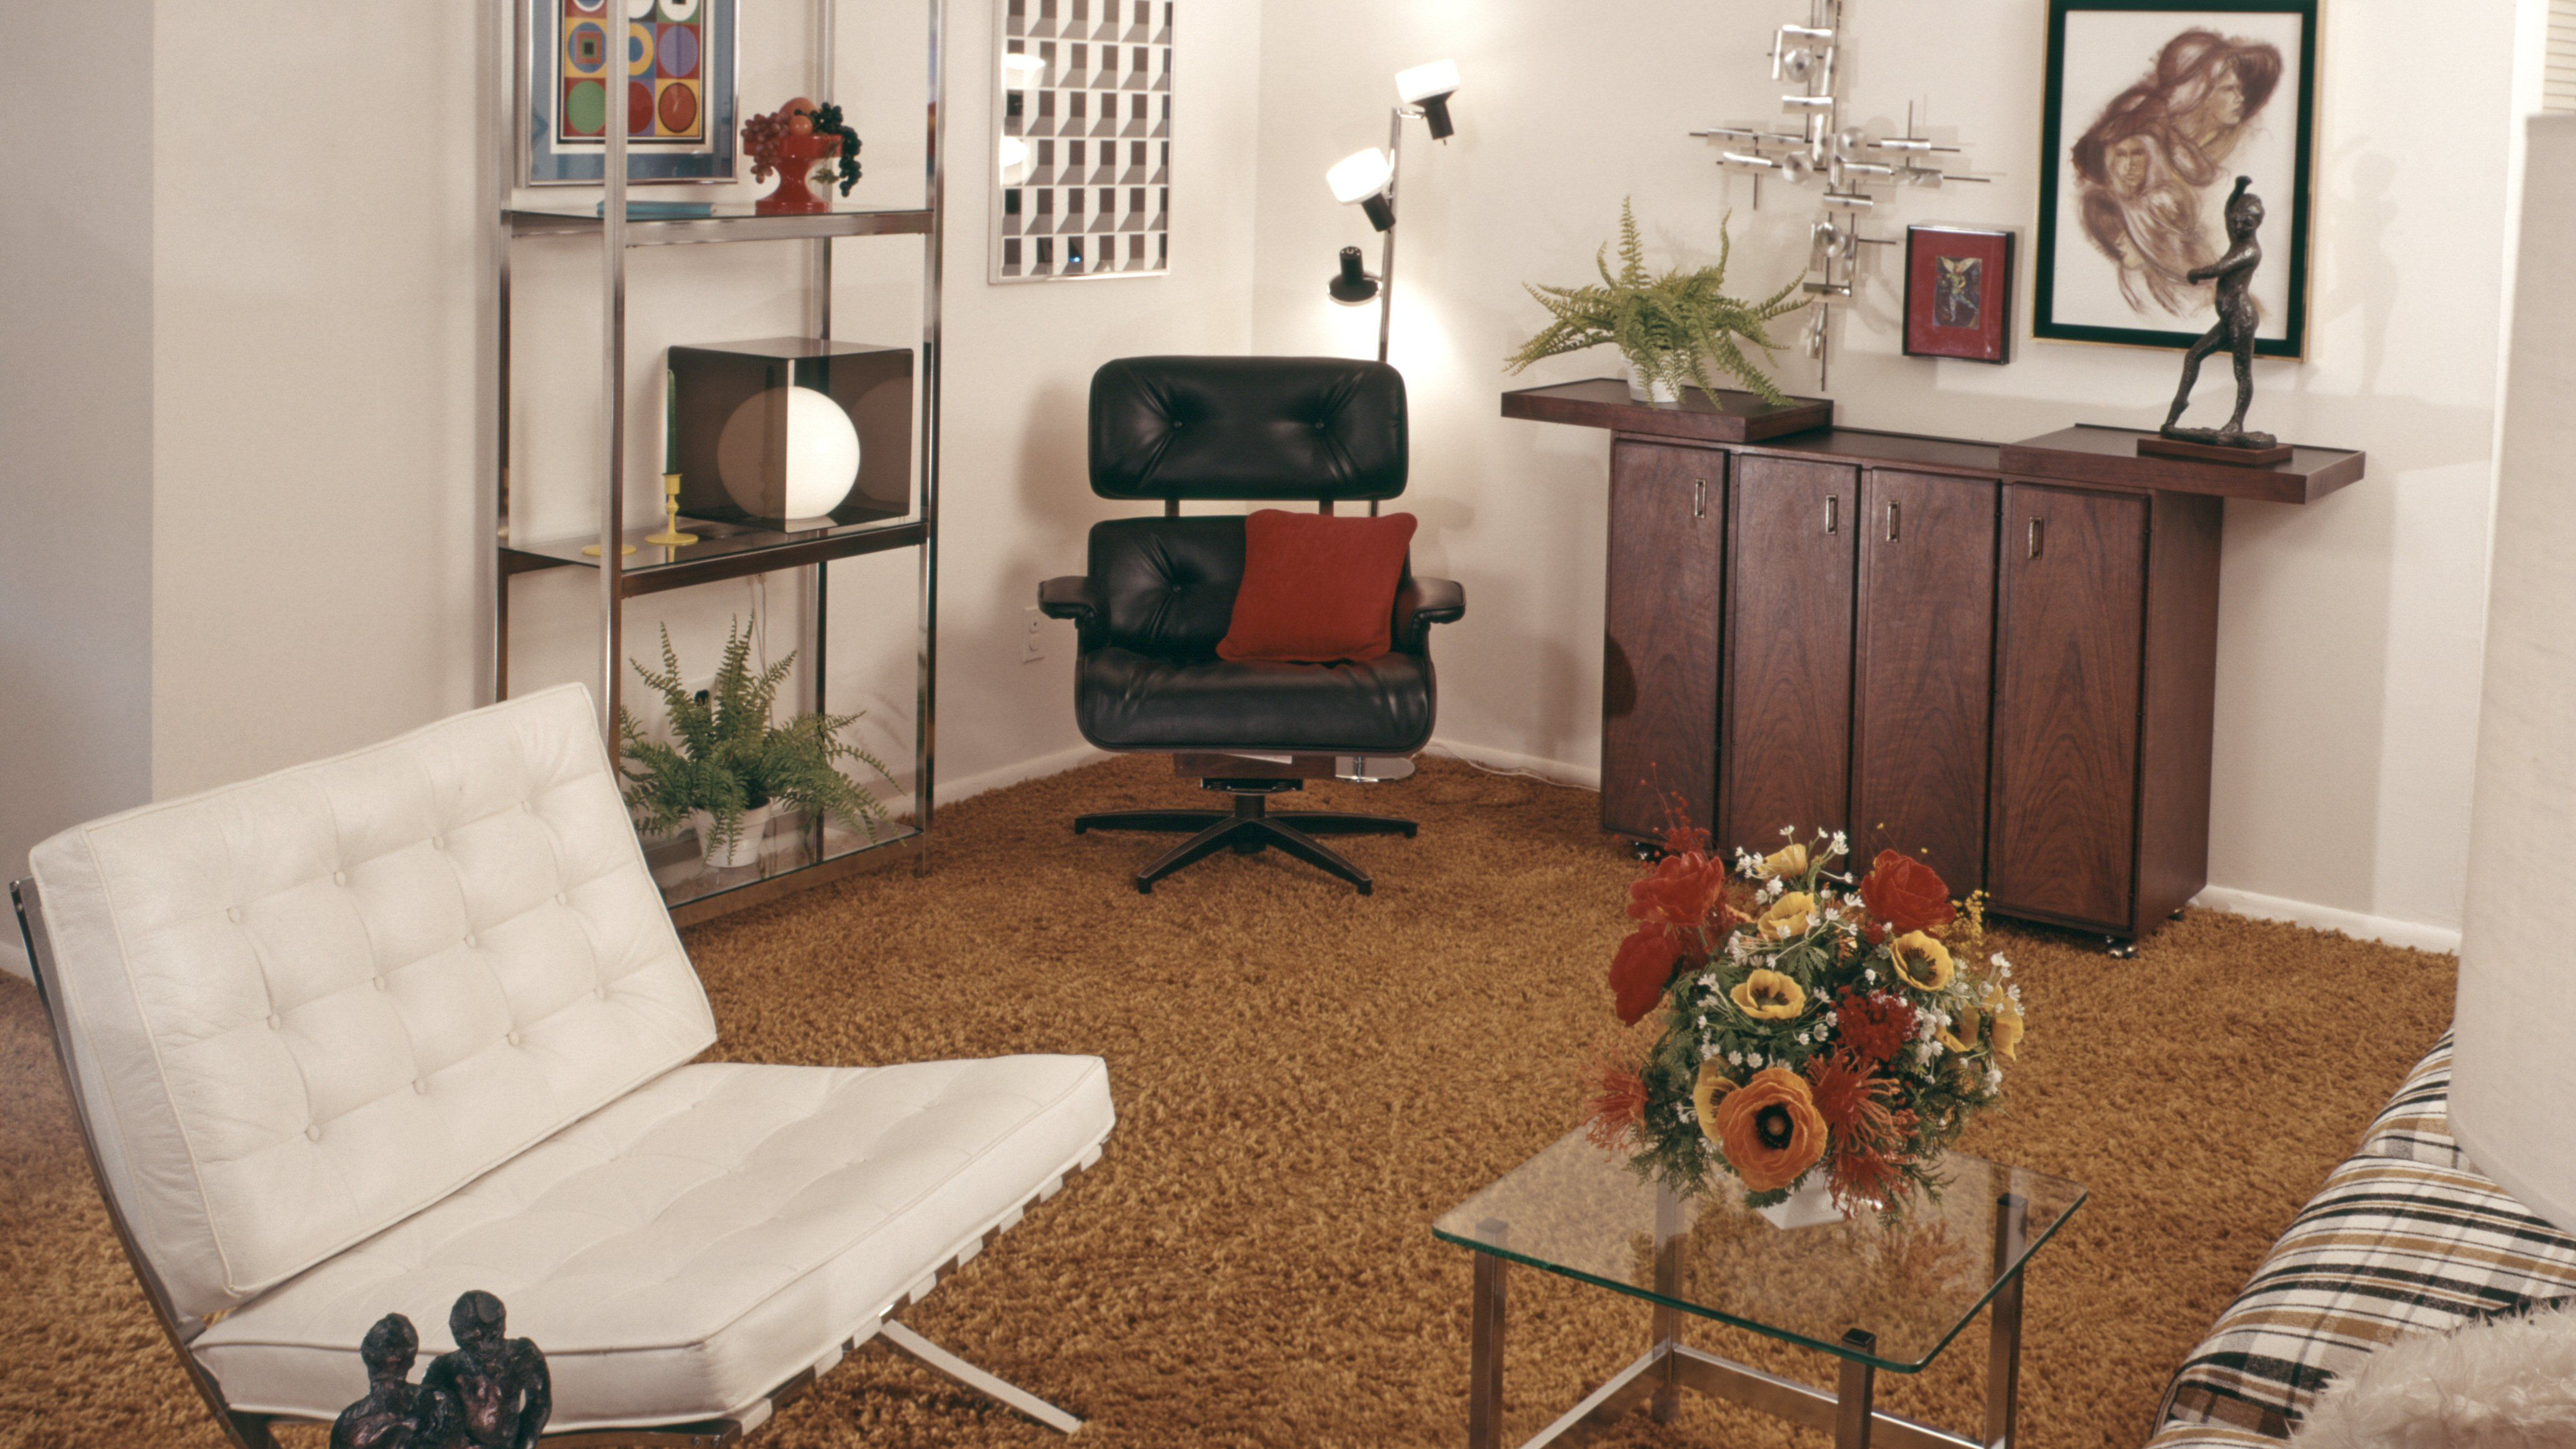 decorative stools for living room.htm chairs by famous architects designs to sit in  chairs by famous architects designs